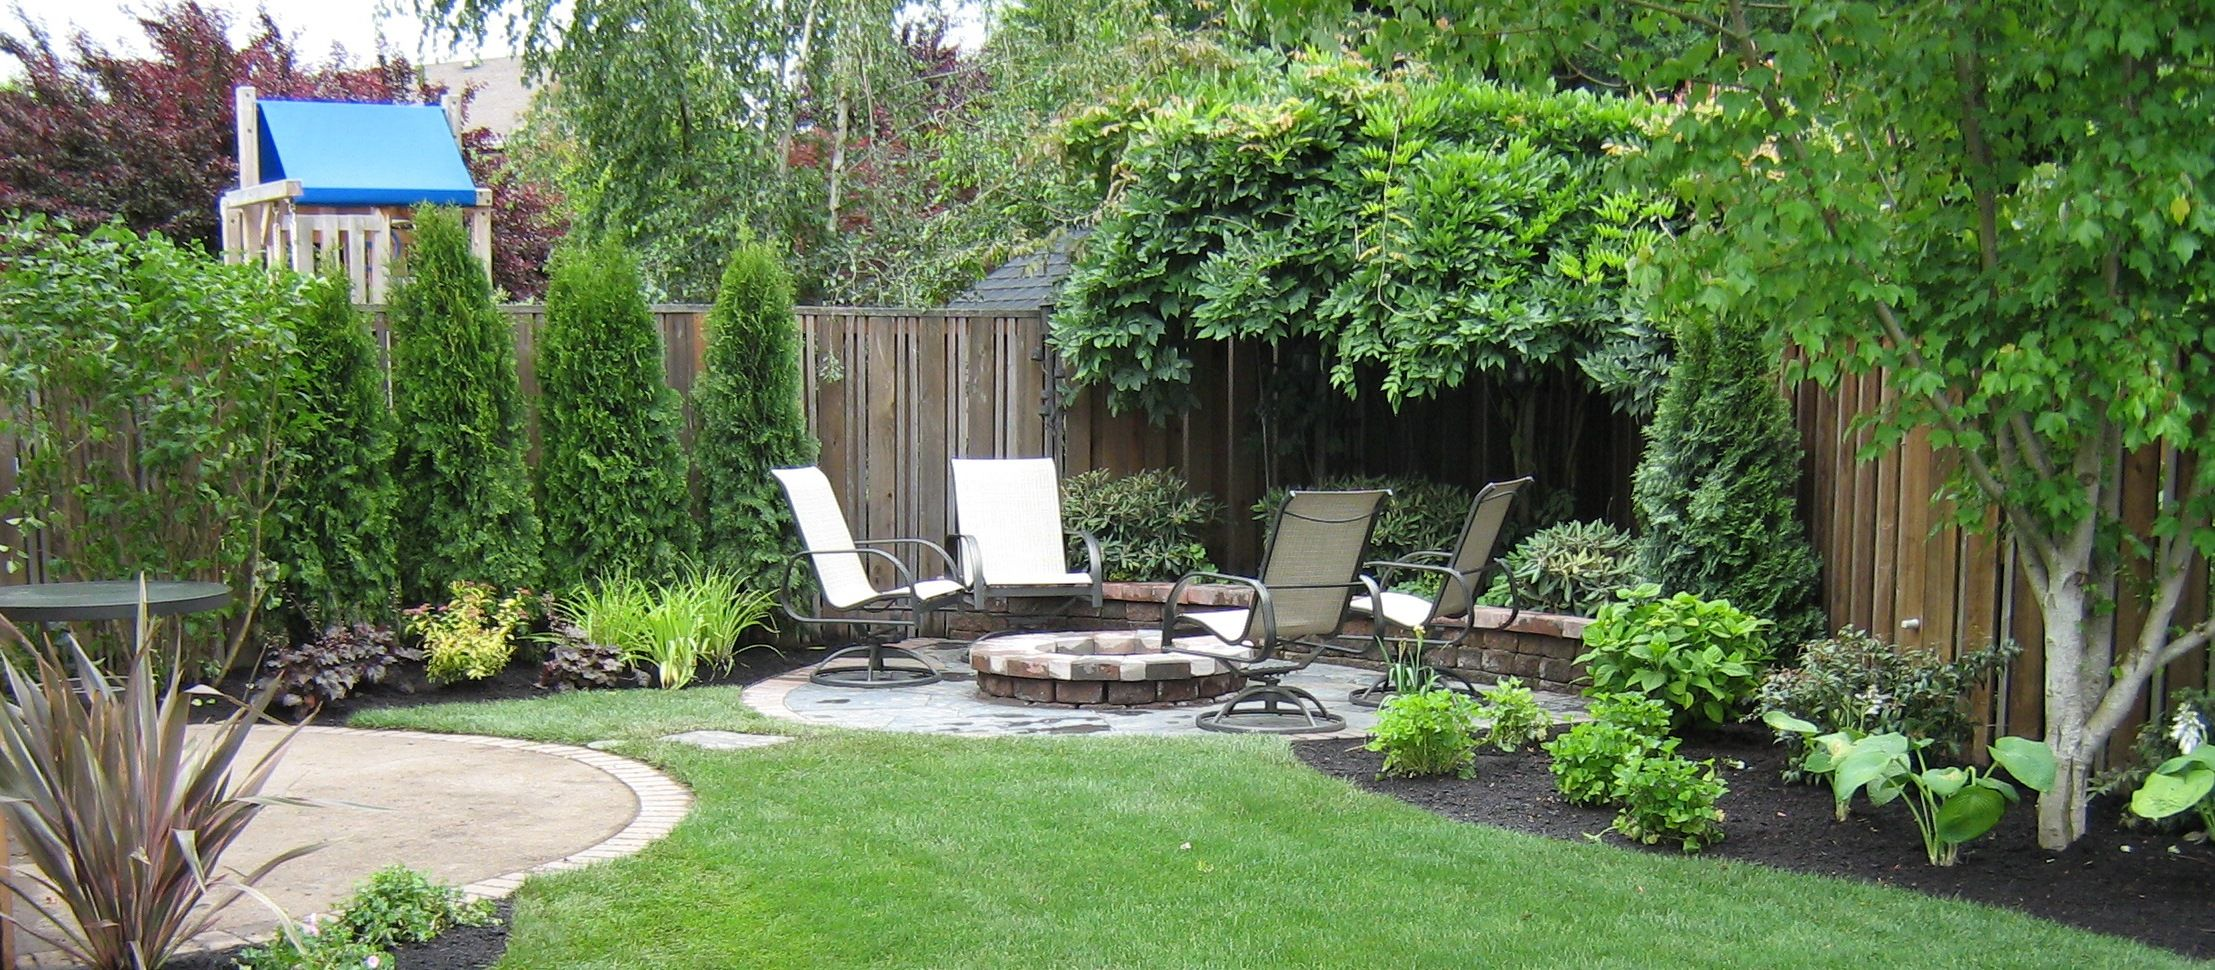 Small backyard landscaping ideas photos garden design ideas for exclusive backyard 119 - Practical ideas to decorate front yards in the city ...